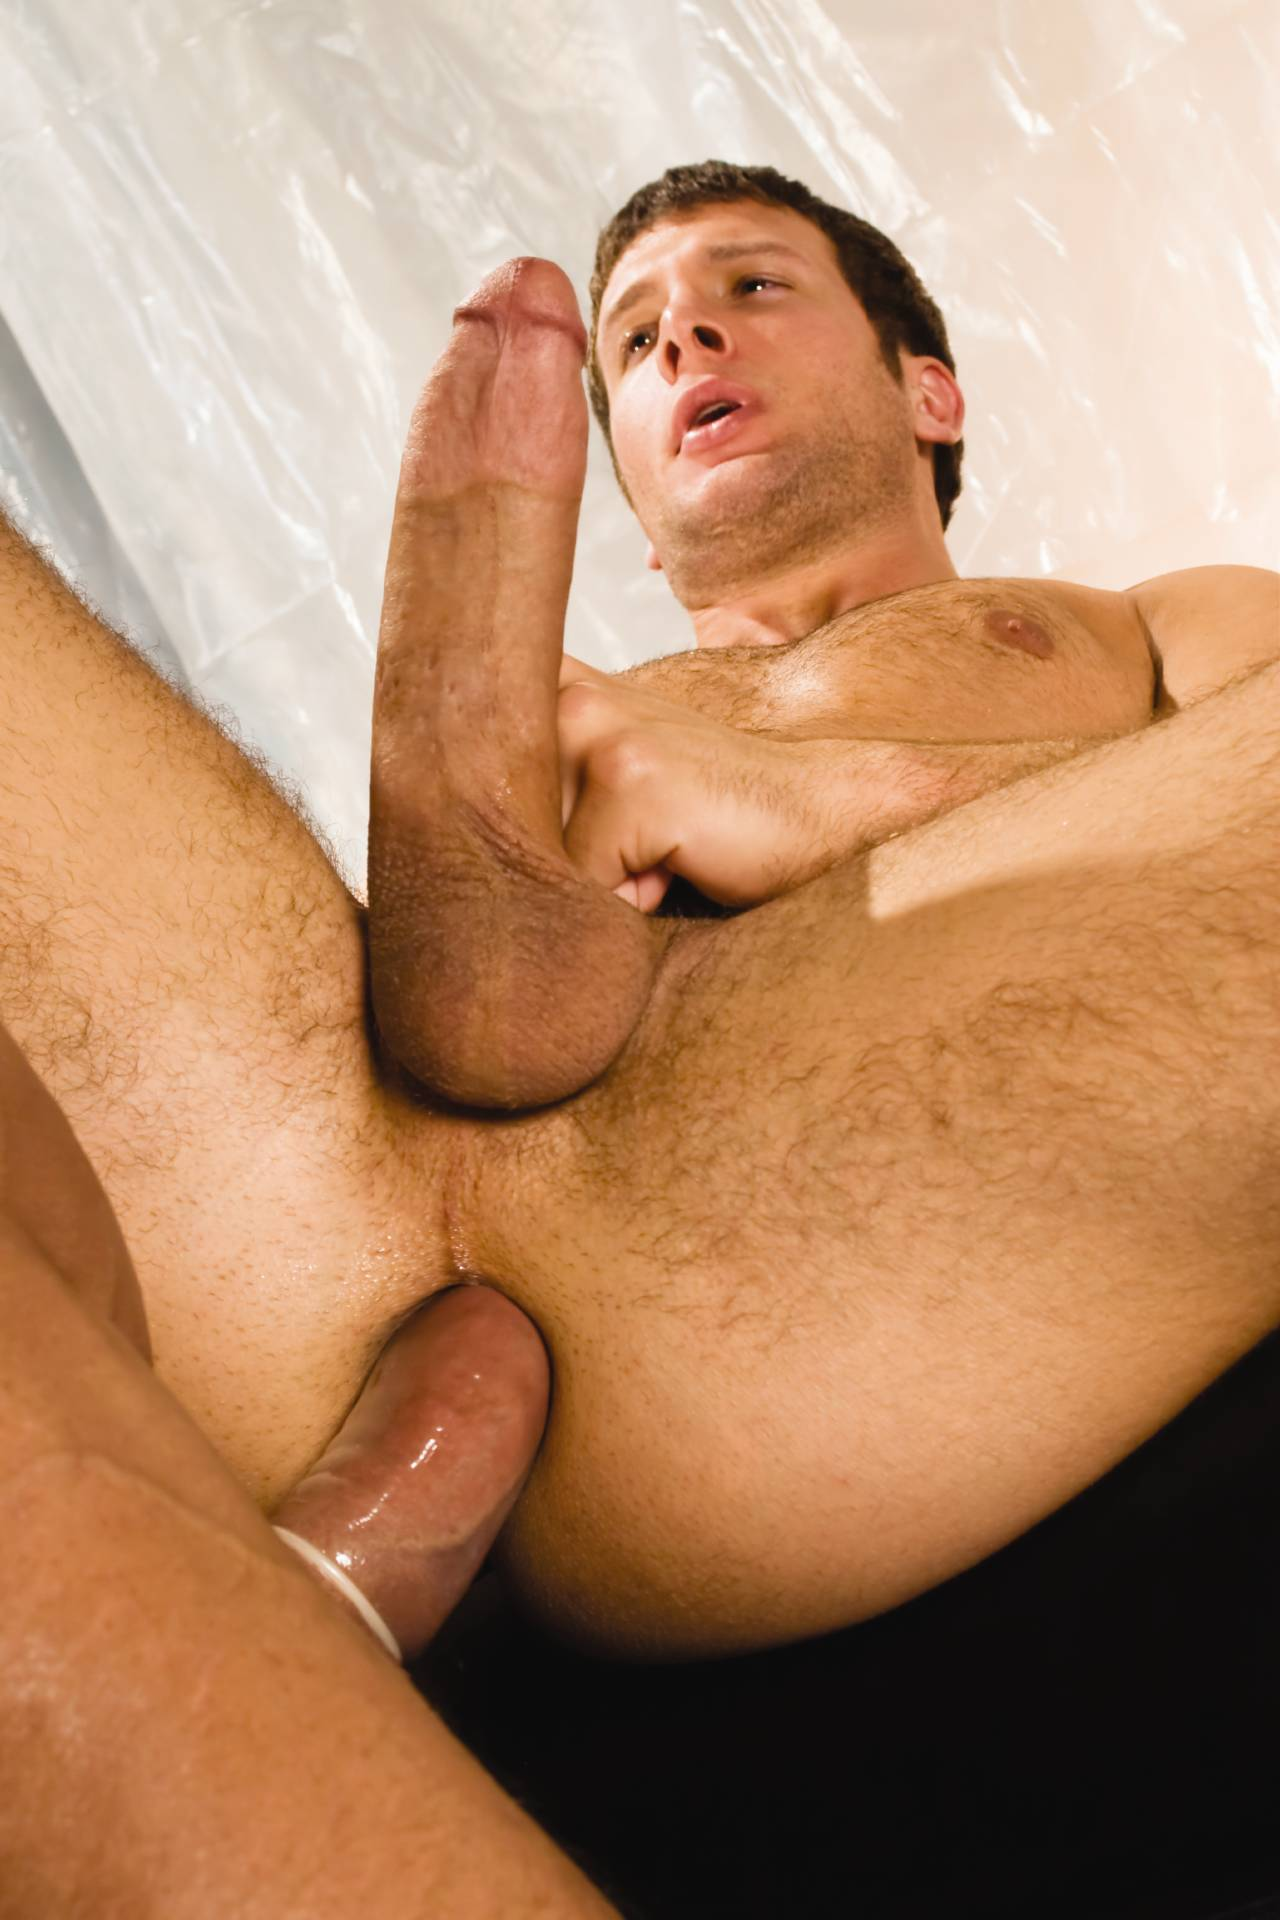 erik-pornoakter-vse-video